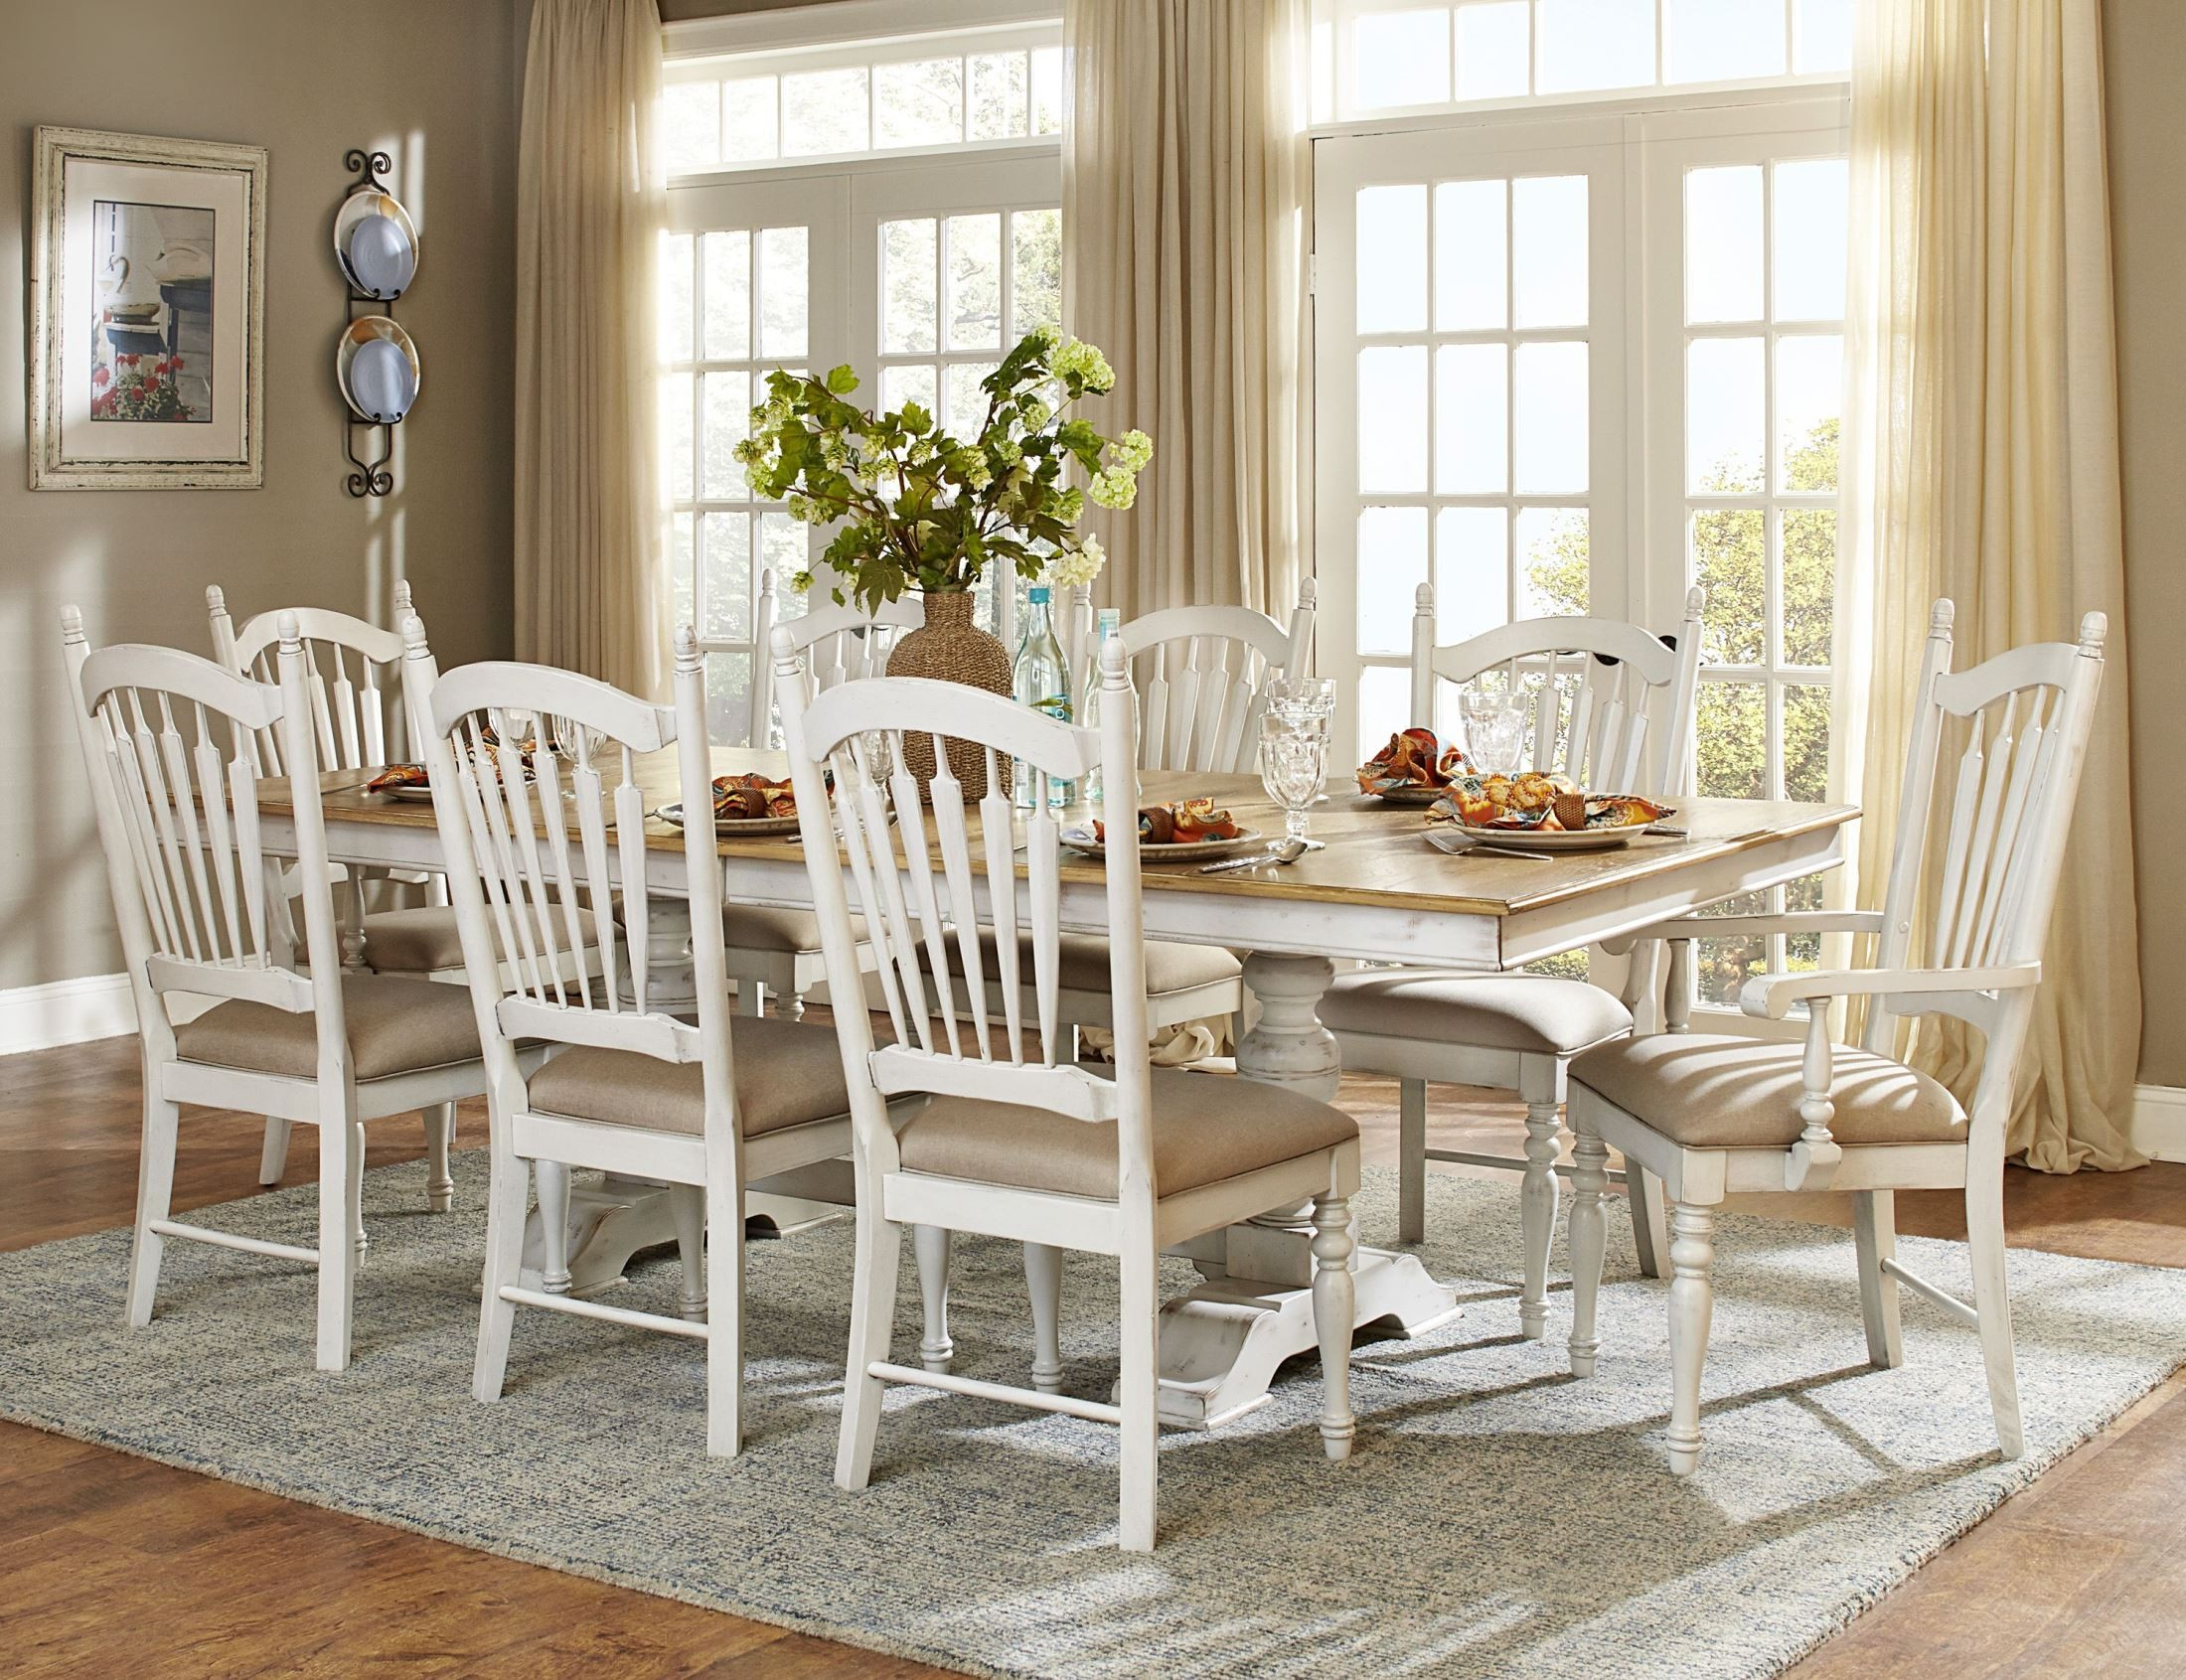 Hollyhock Distressed White Dining Room Set From Homelegance 5123 96 Coleman Furniture